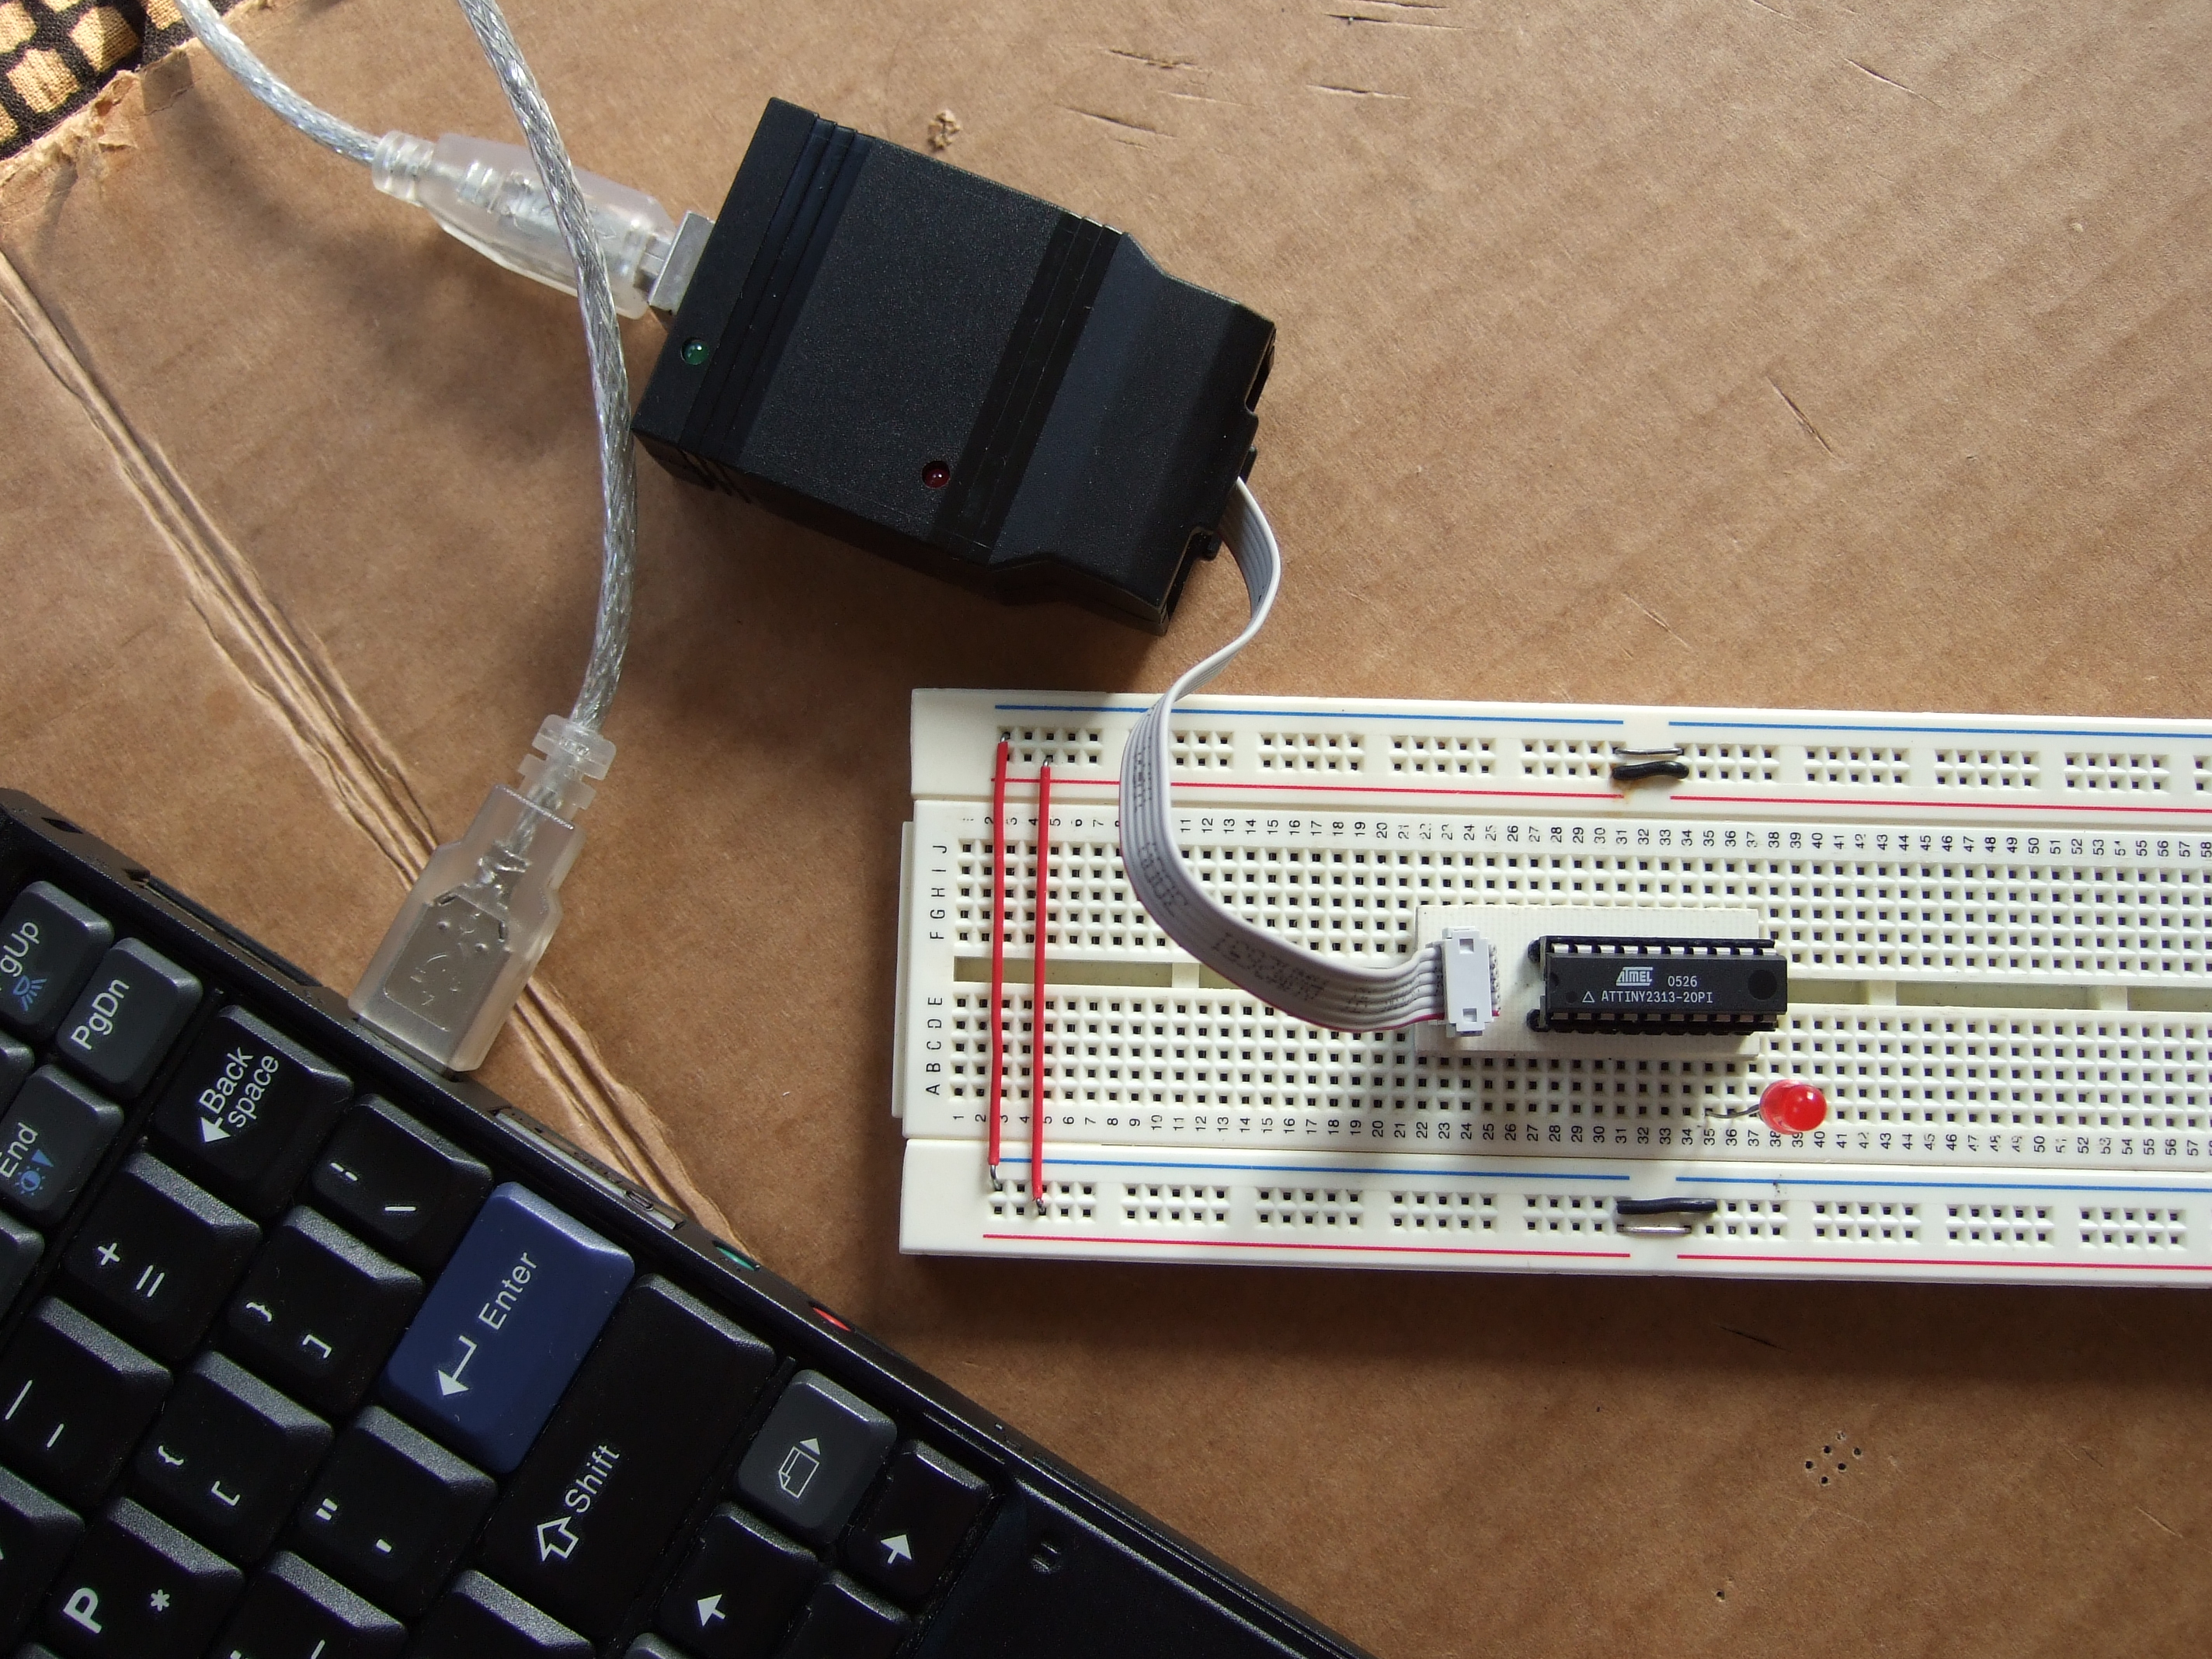 USB RFID Reading Keyboard using USnooBie